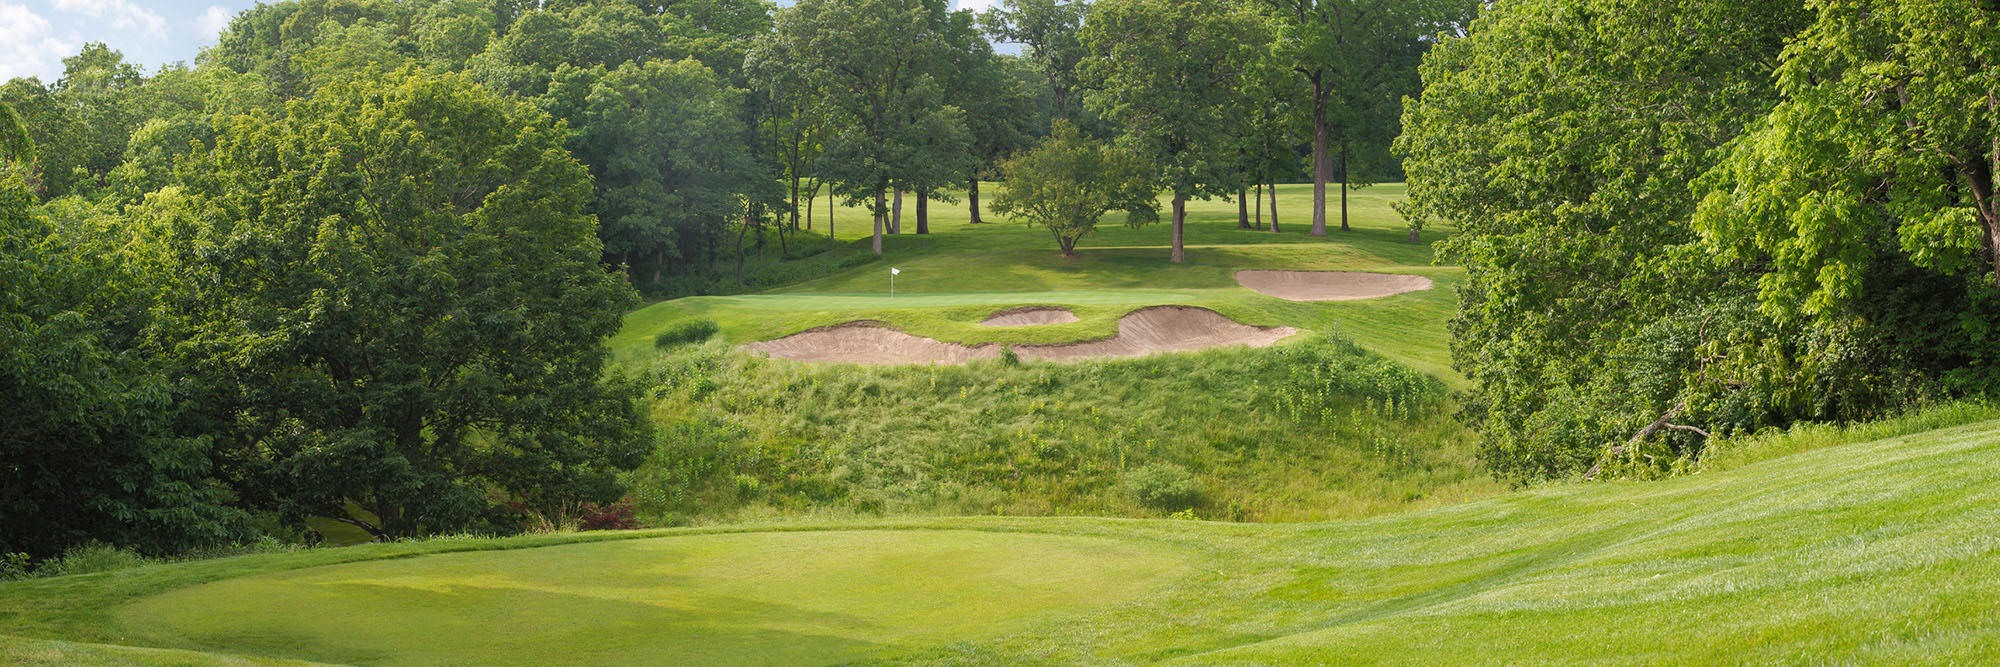 Golf Course Image - Oakwood Country Club No. 7